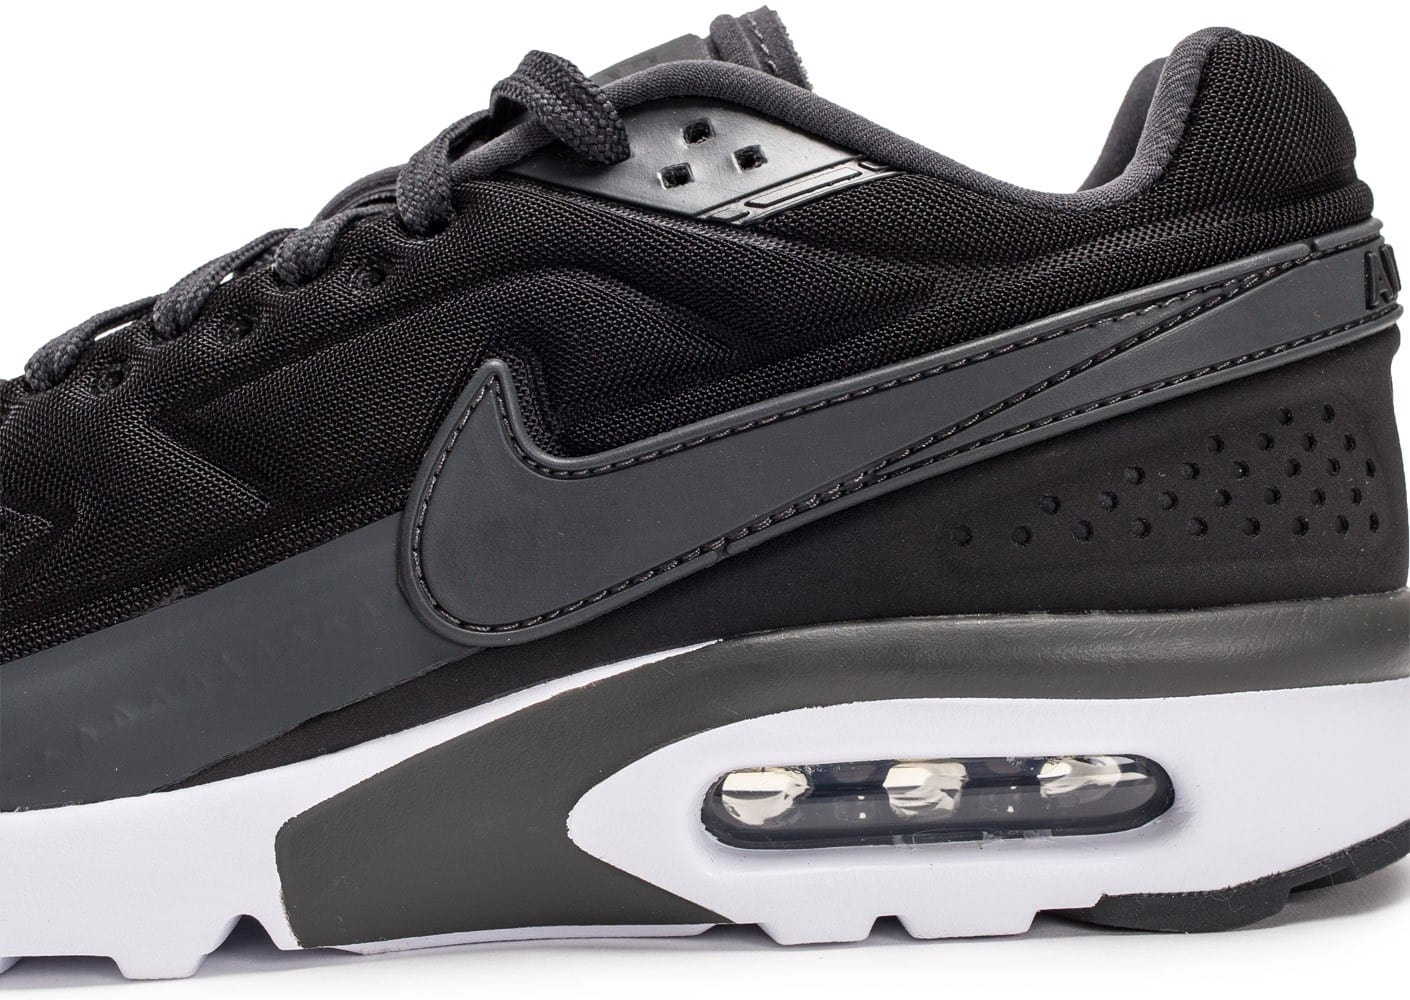 super popular 5242f afb3a ... Chaussures Nike Air Max BW Ultra noir anthracite vue dessus